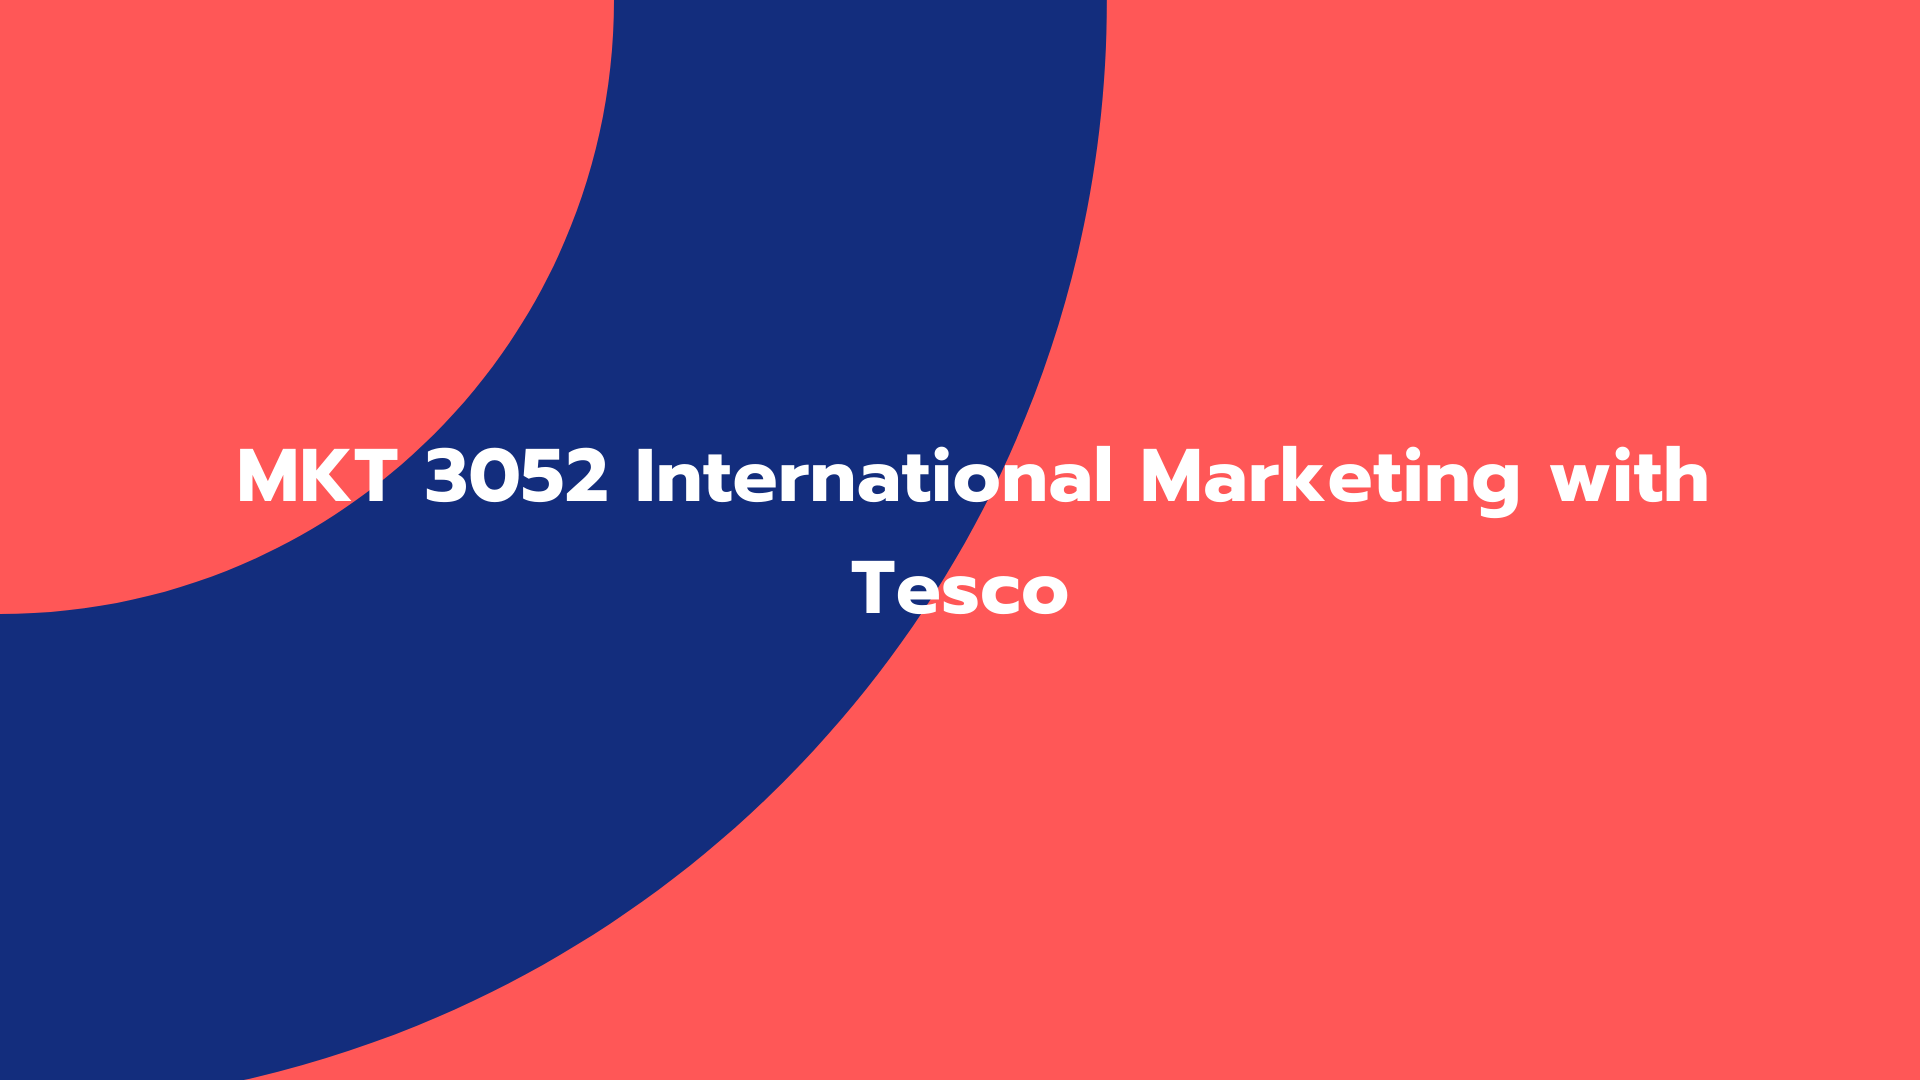 MKT 3052 International Marketing with Tesco